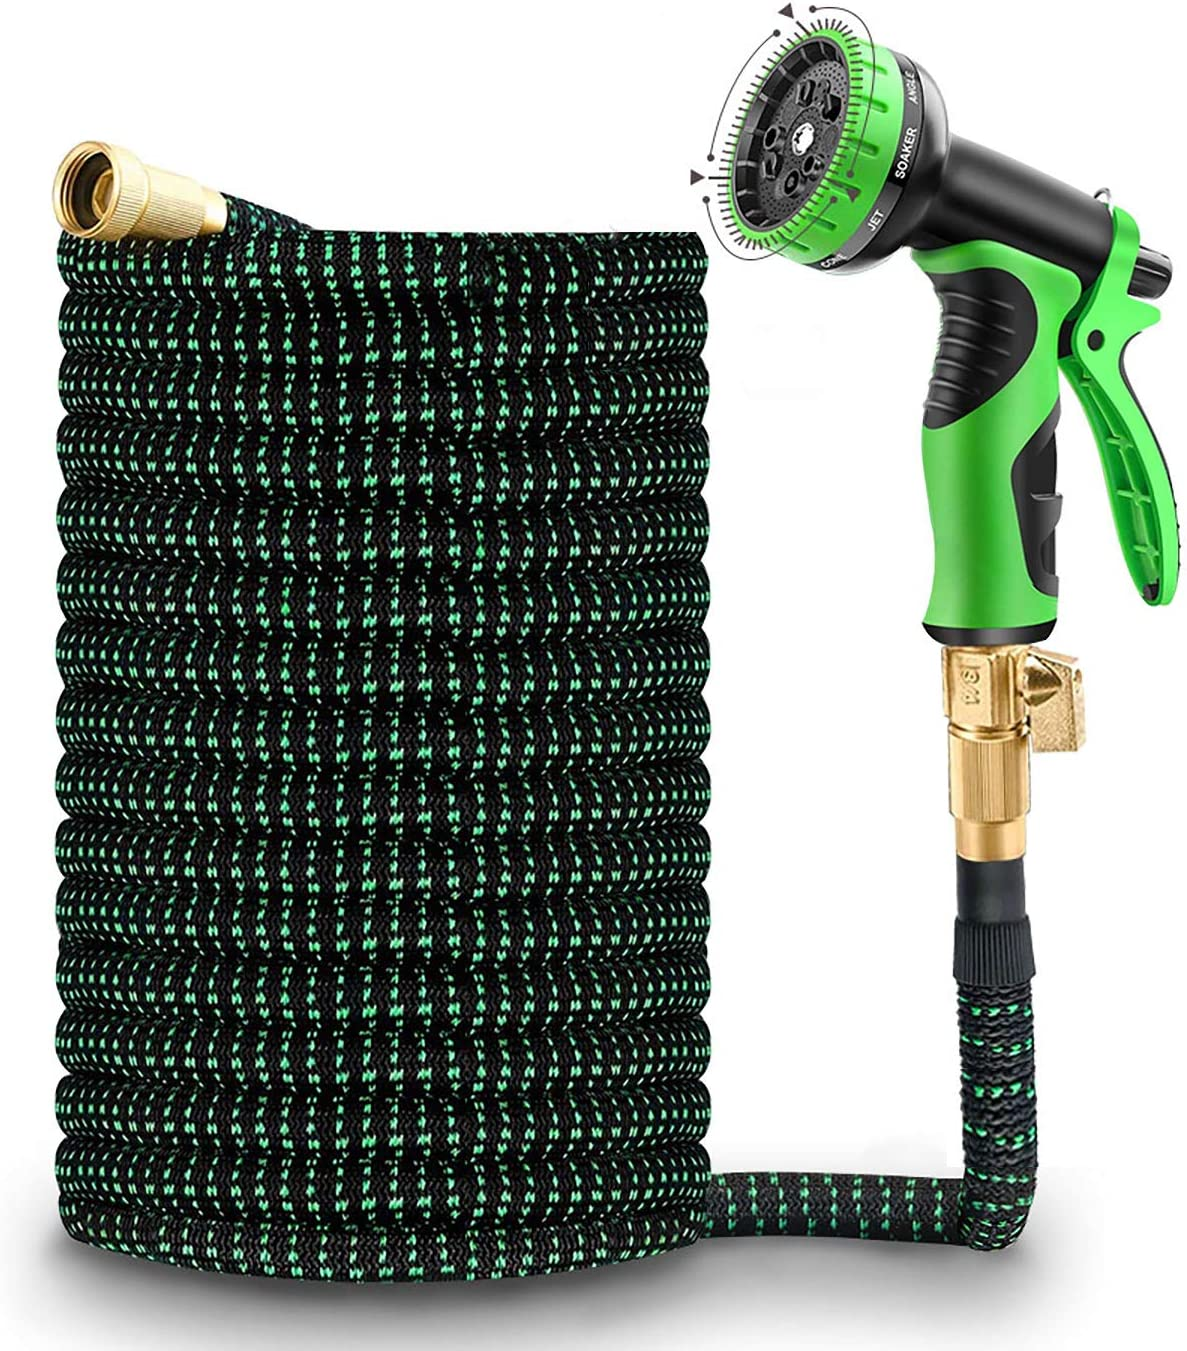 TRINIDa Garden Hose 50FT, Expandable Garden Hose with 10 Functions Spray Nozzle, Solid Brass Fitting & 3-Layers Latex Core. Rot, Crack, Leak Resistant Water Hose